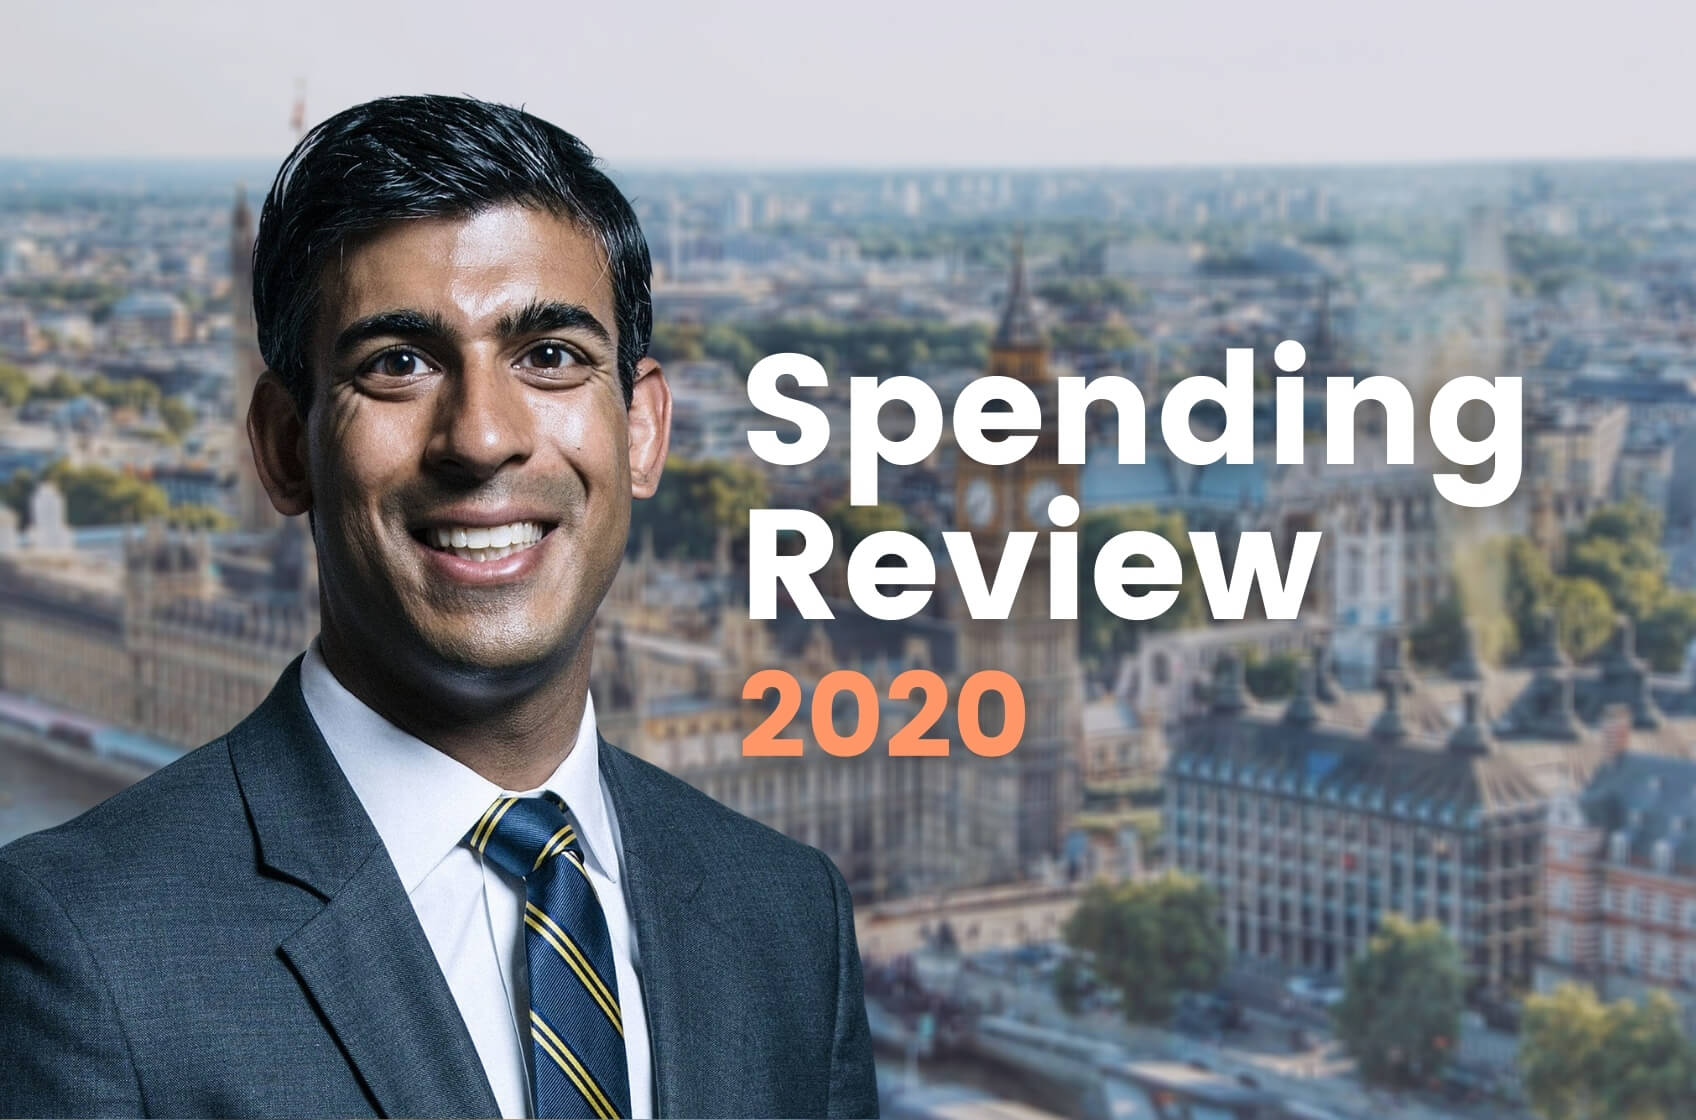 spending-review-2020